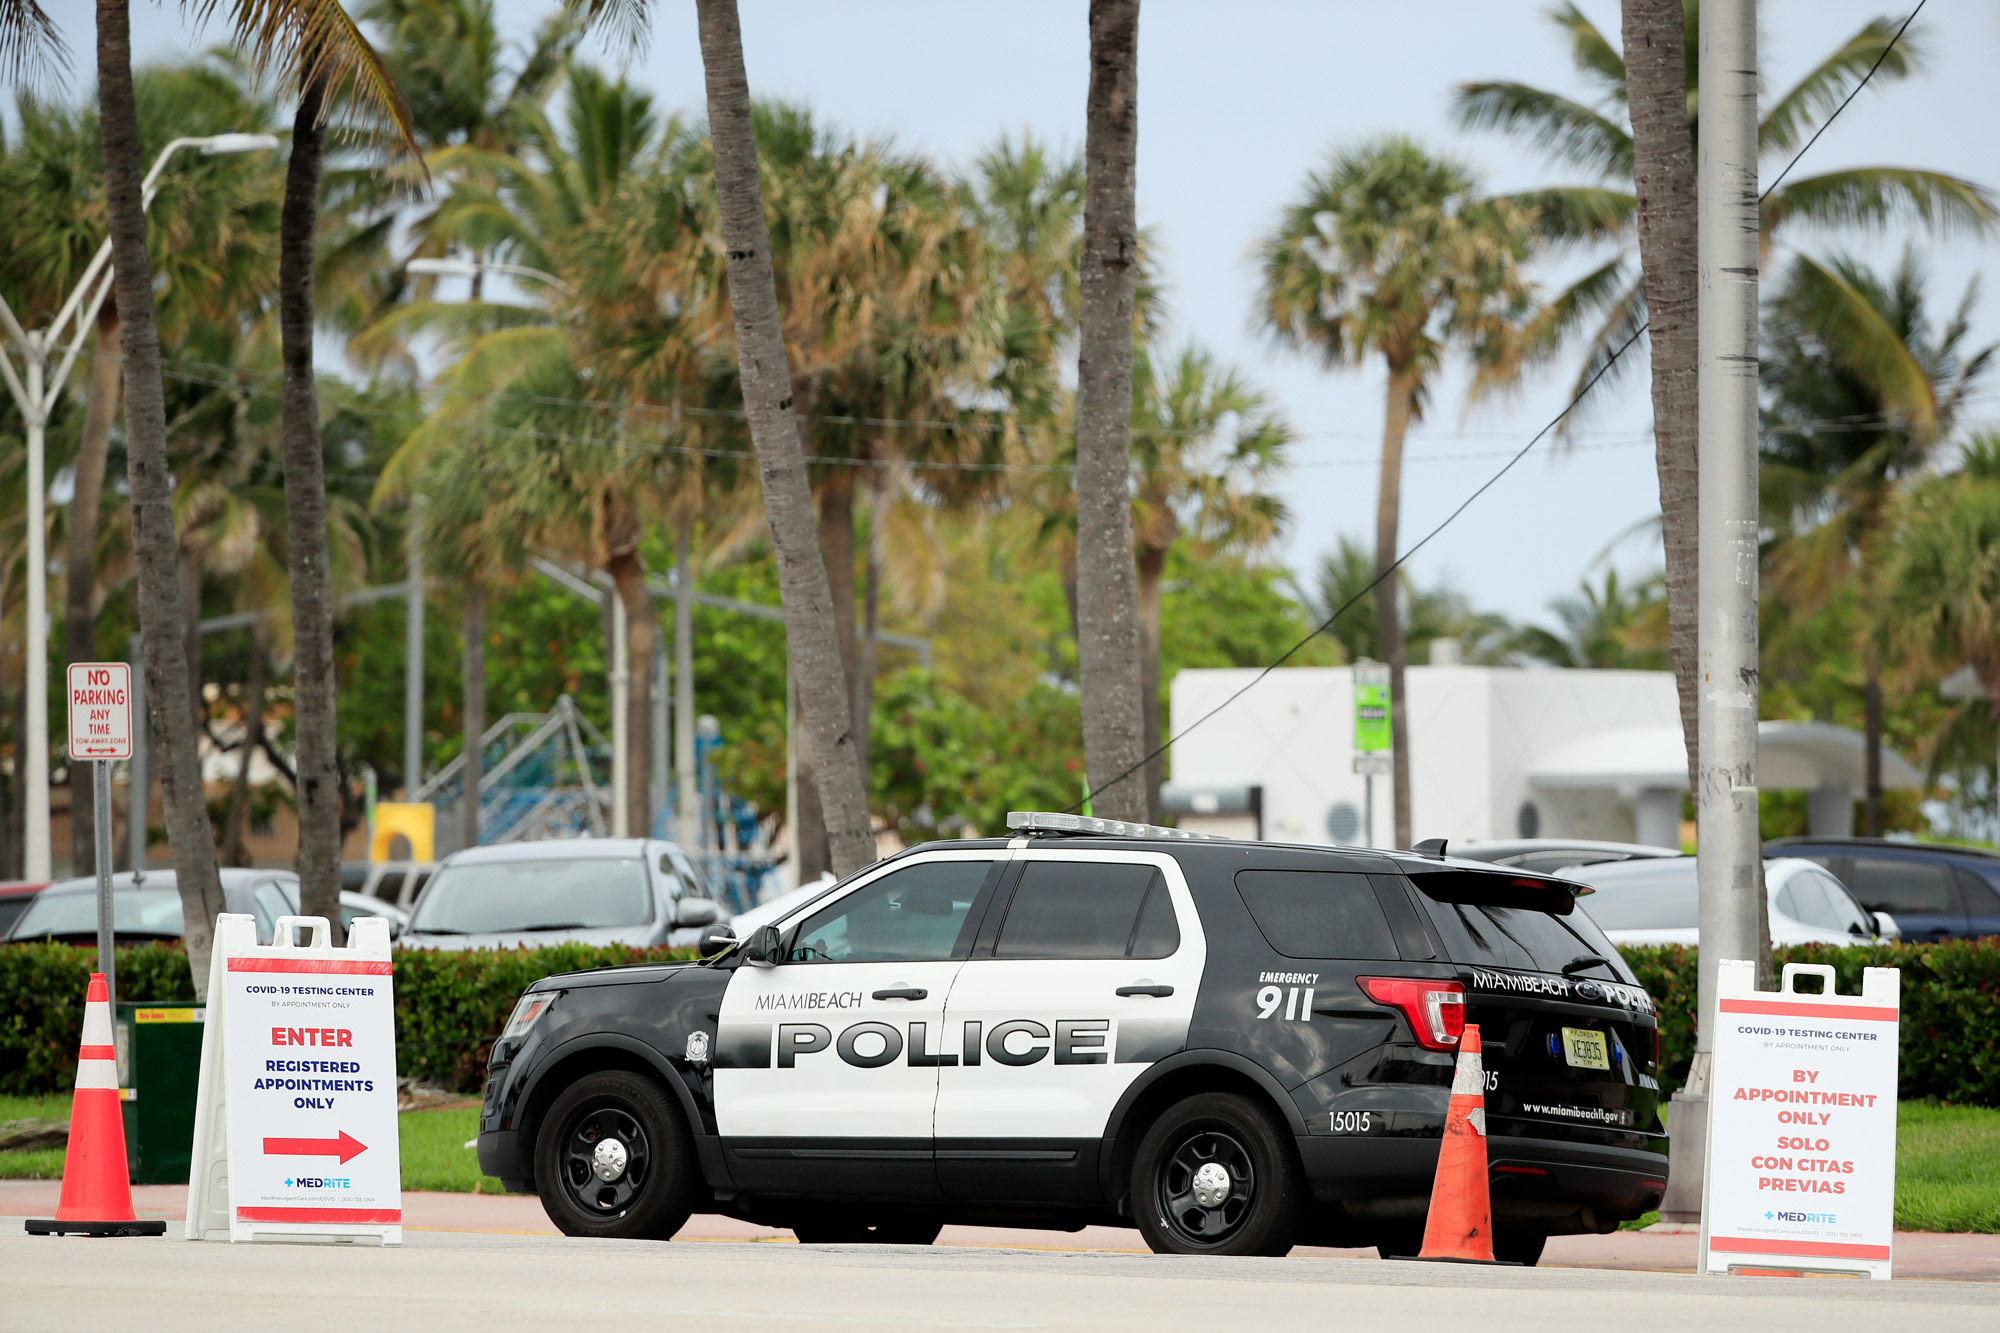 A Miami Beach Police patrol vehicle is parked on April 5 in Miami Beach, Florida.